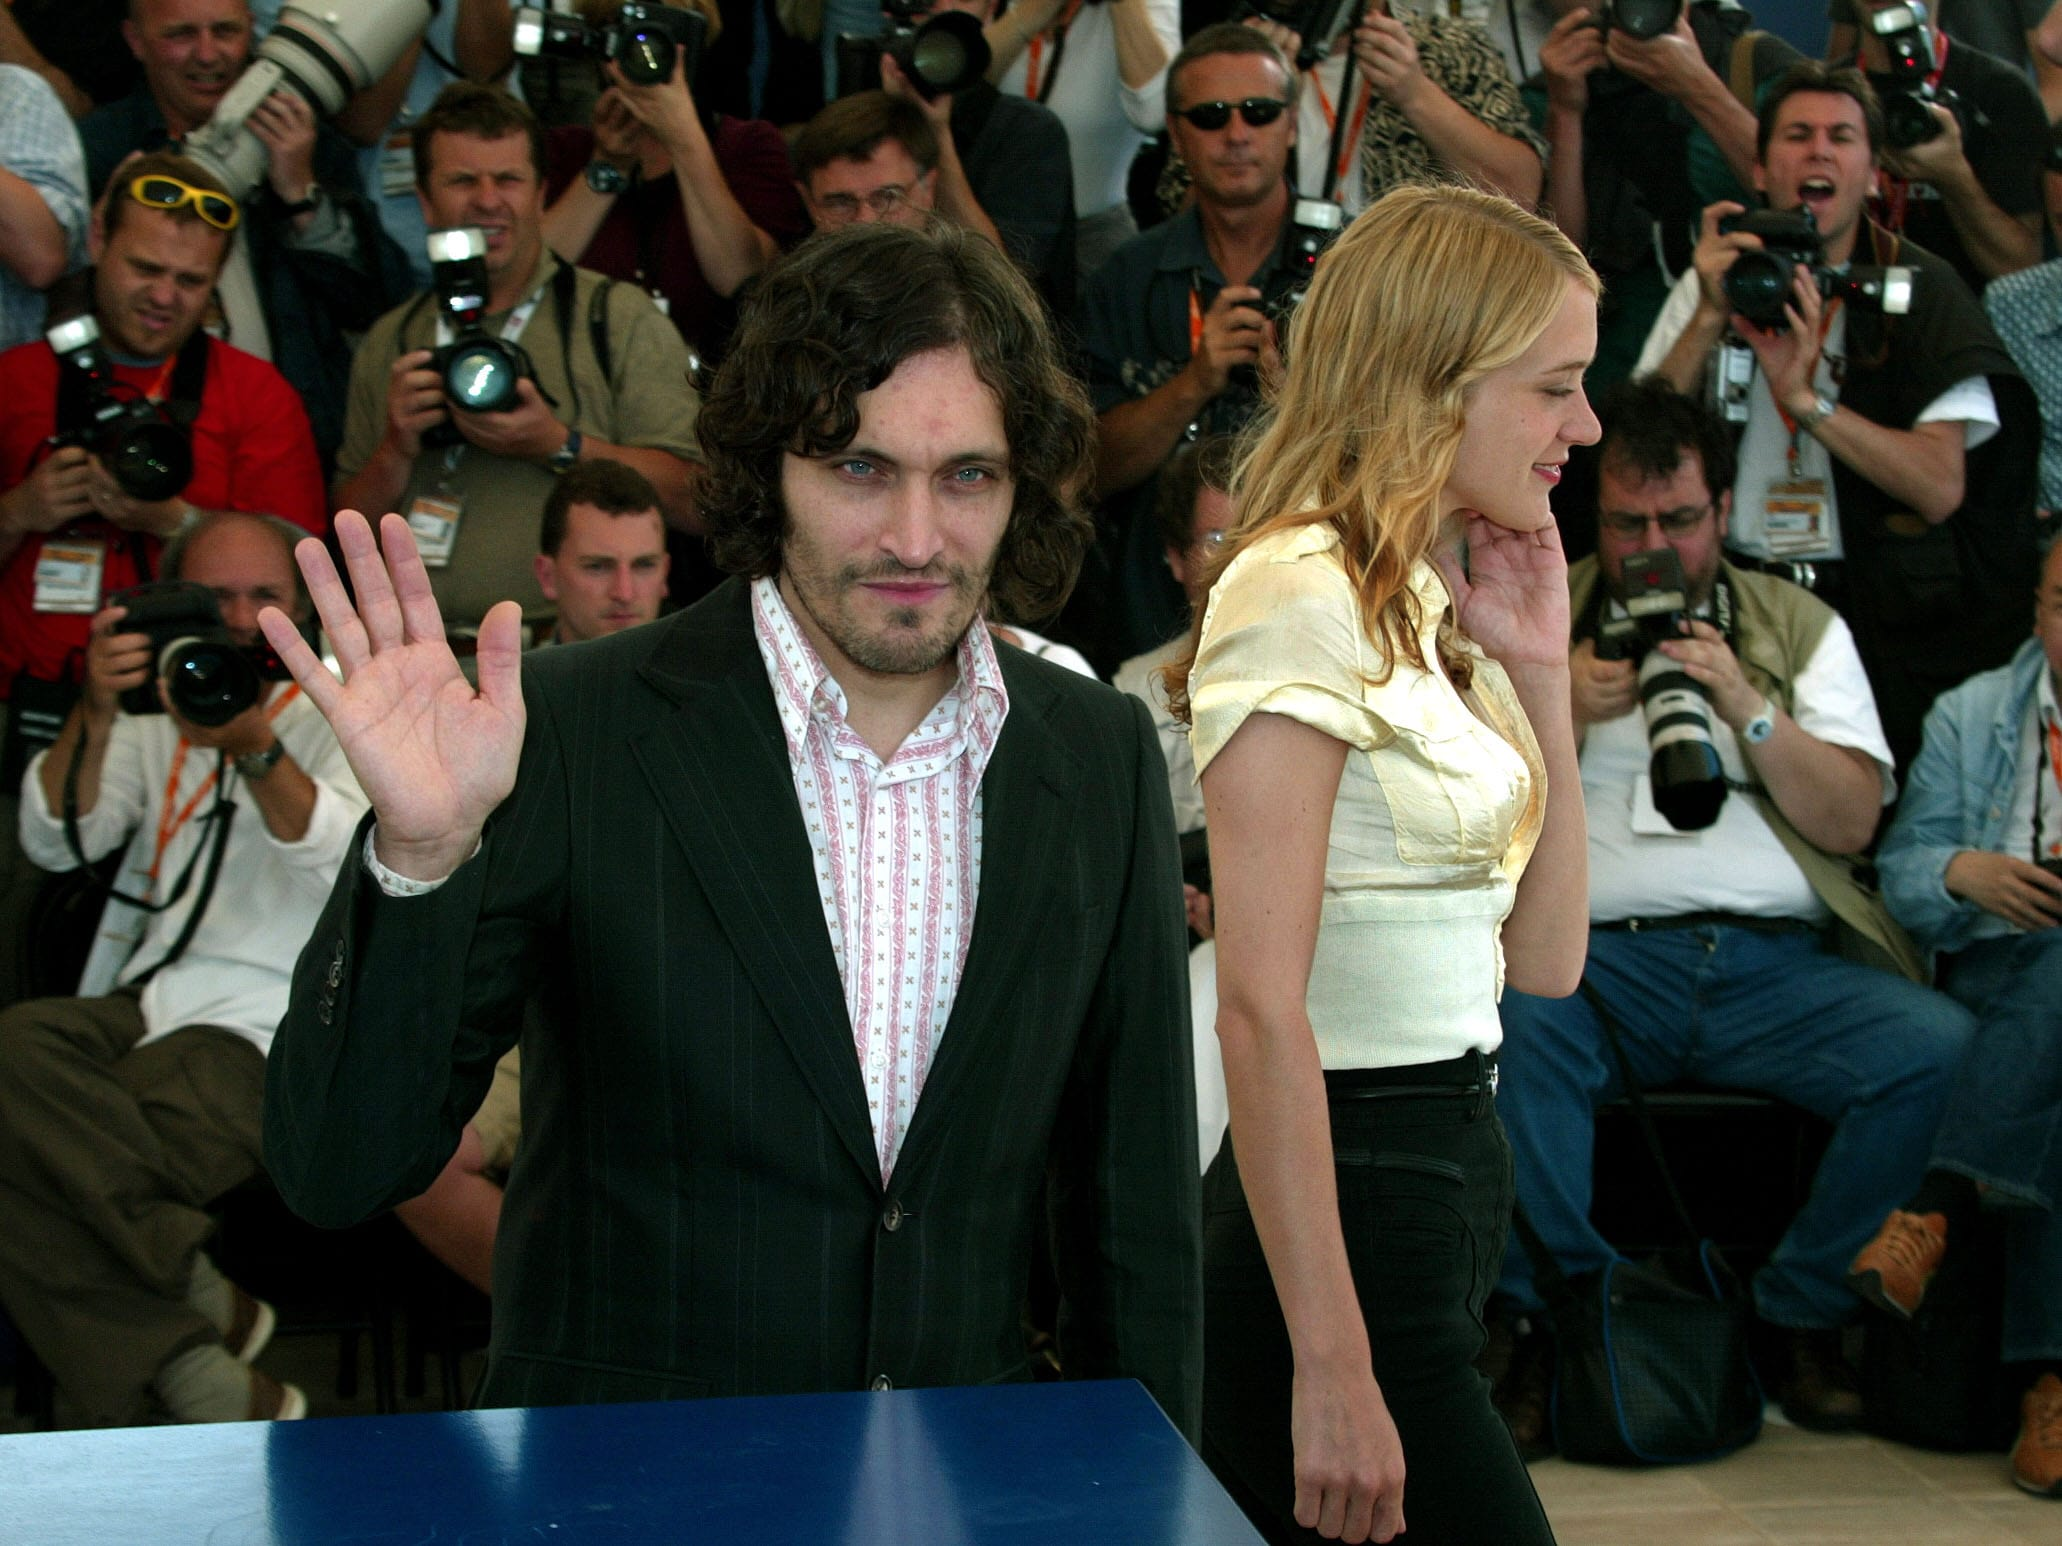 Vincent Gallo Full hd wallpapers